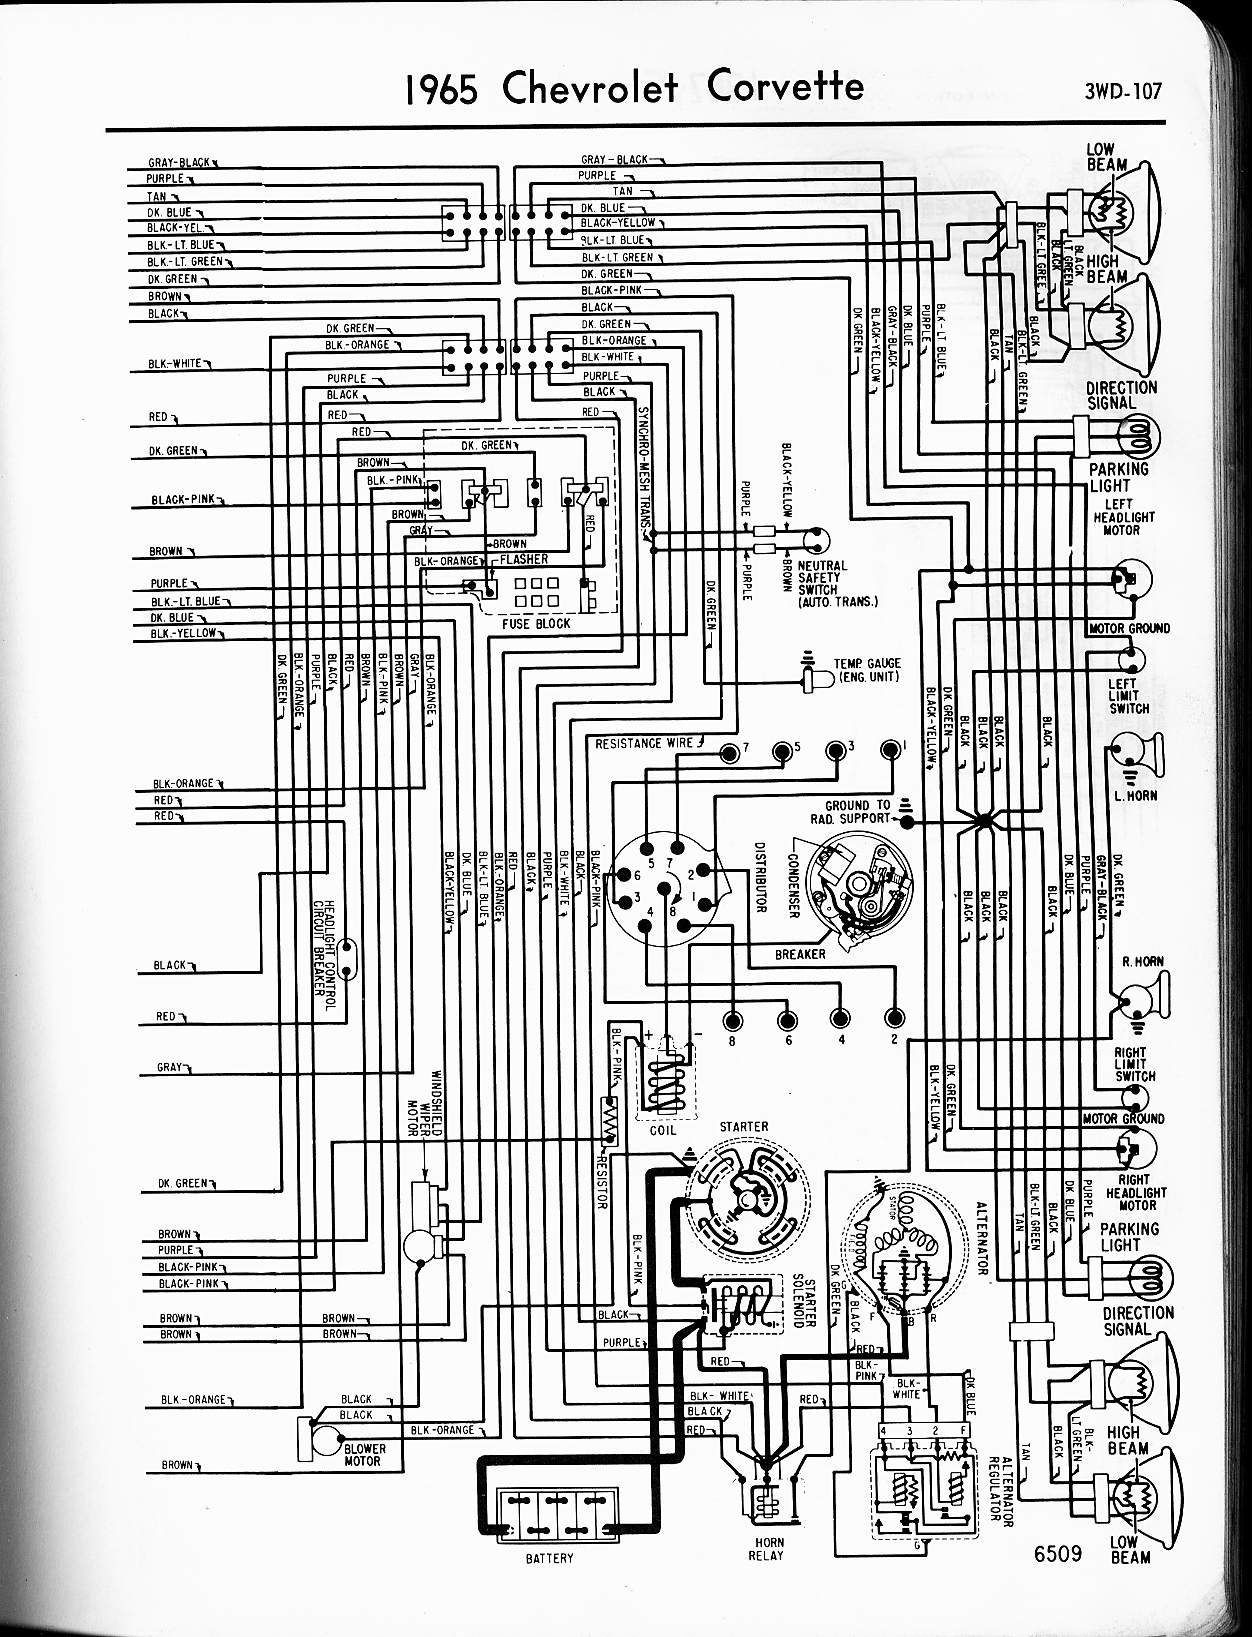 1967 corvette wiring diagram wiring diagram rh cleanprosperity co 1974 Corvette  Wiring Diagram 1979 Corvette Wiring Schematic